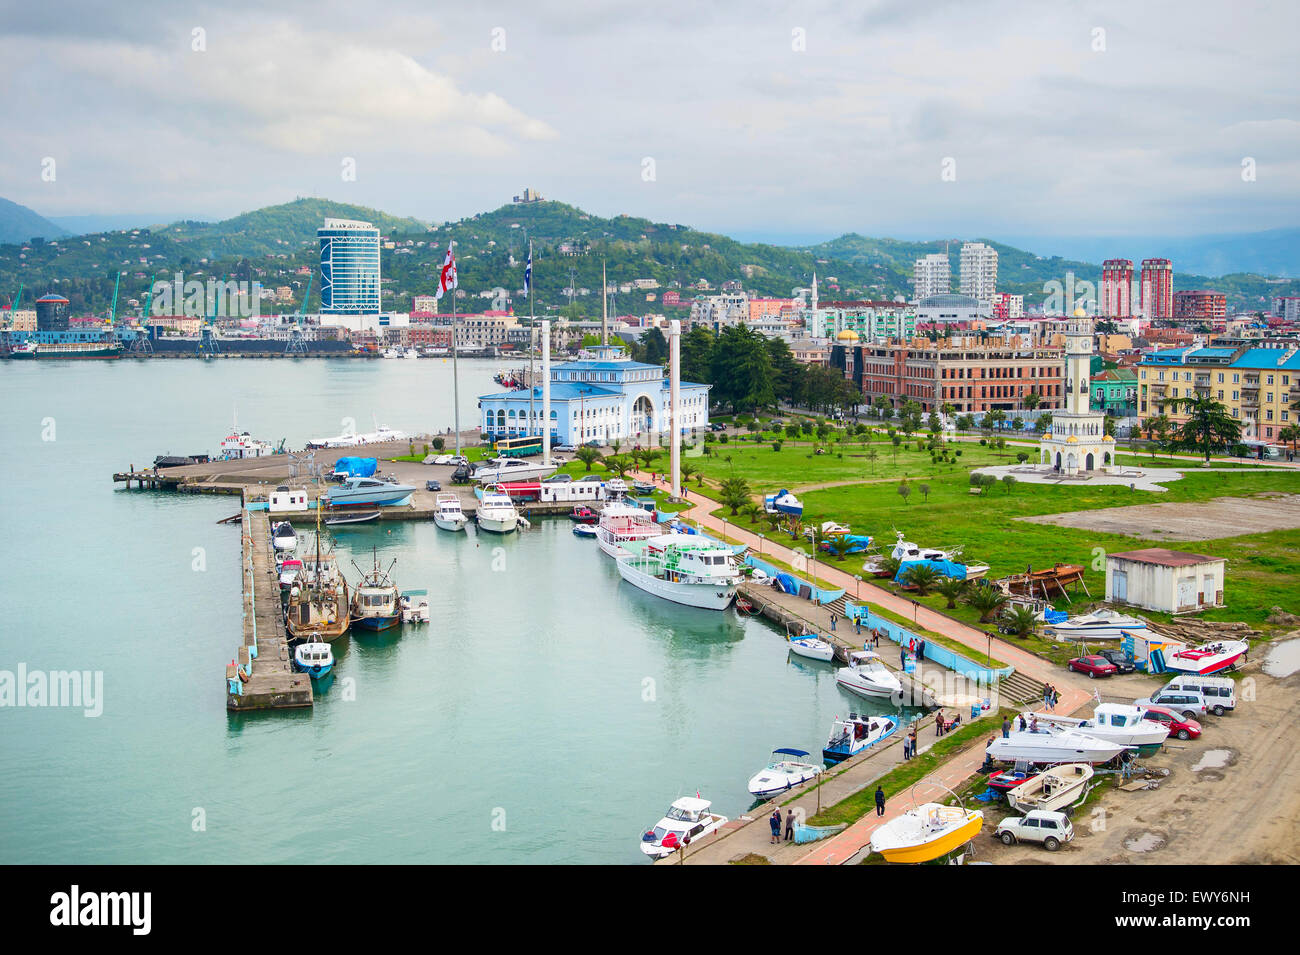 Batumi Sea Port with boats and passenger terminal. Georgia - Stock Image